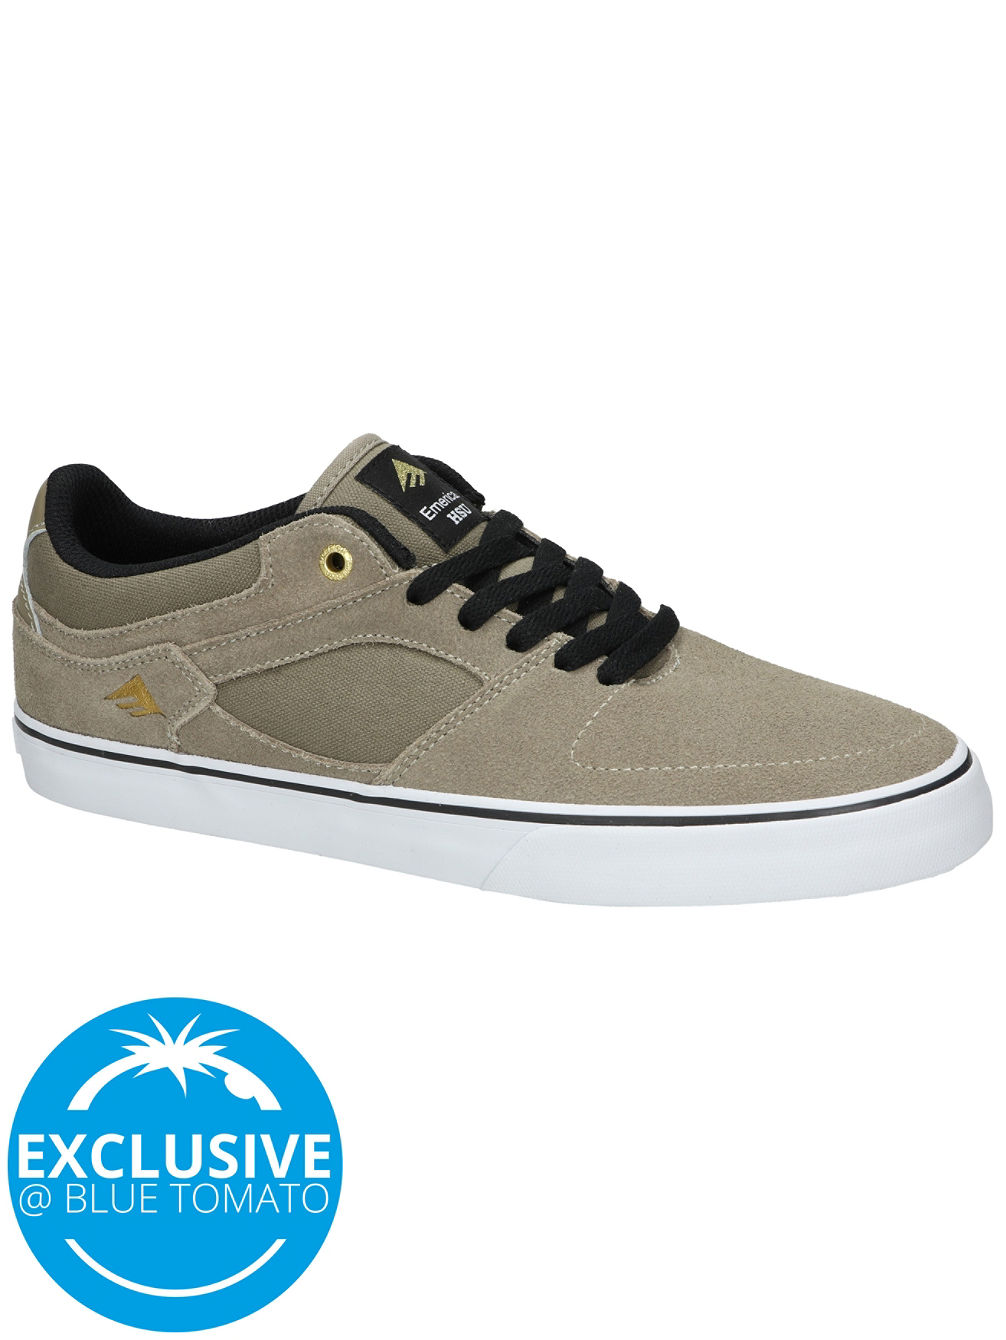 HSU Log Vulc SMU Skate Shoes